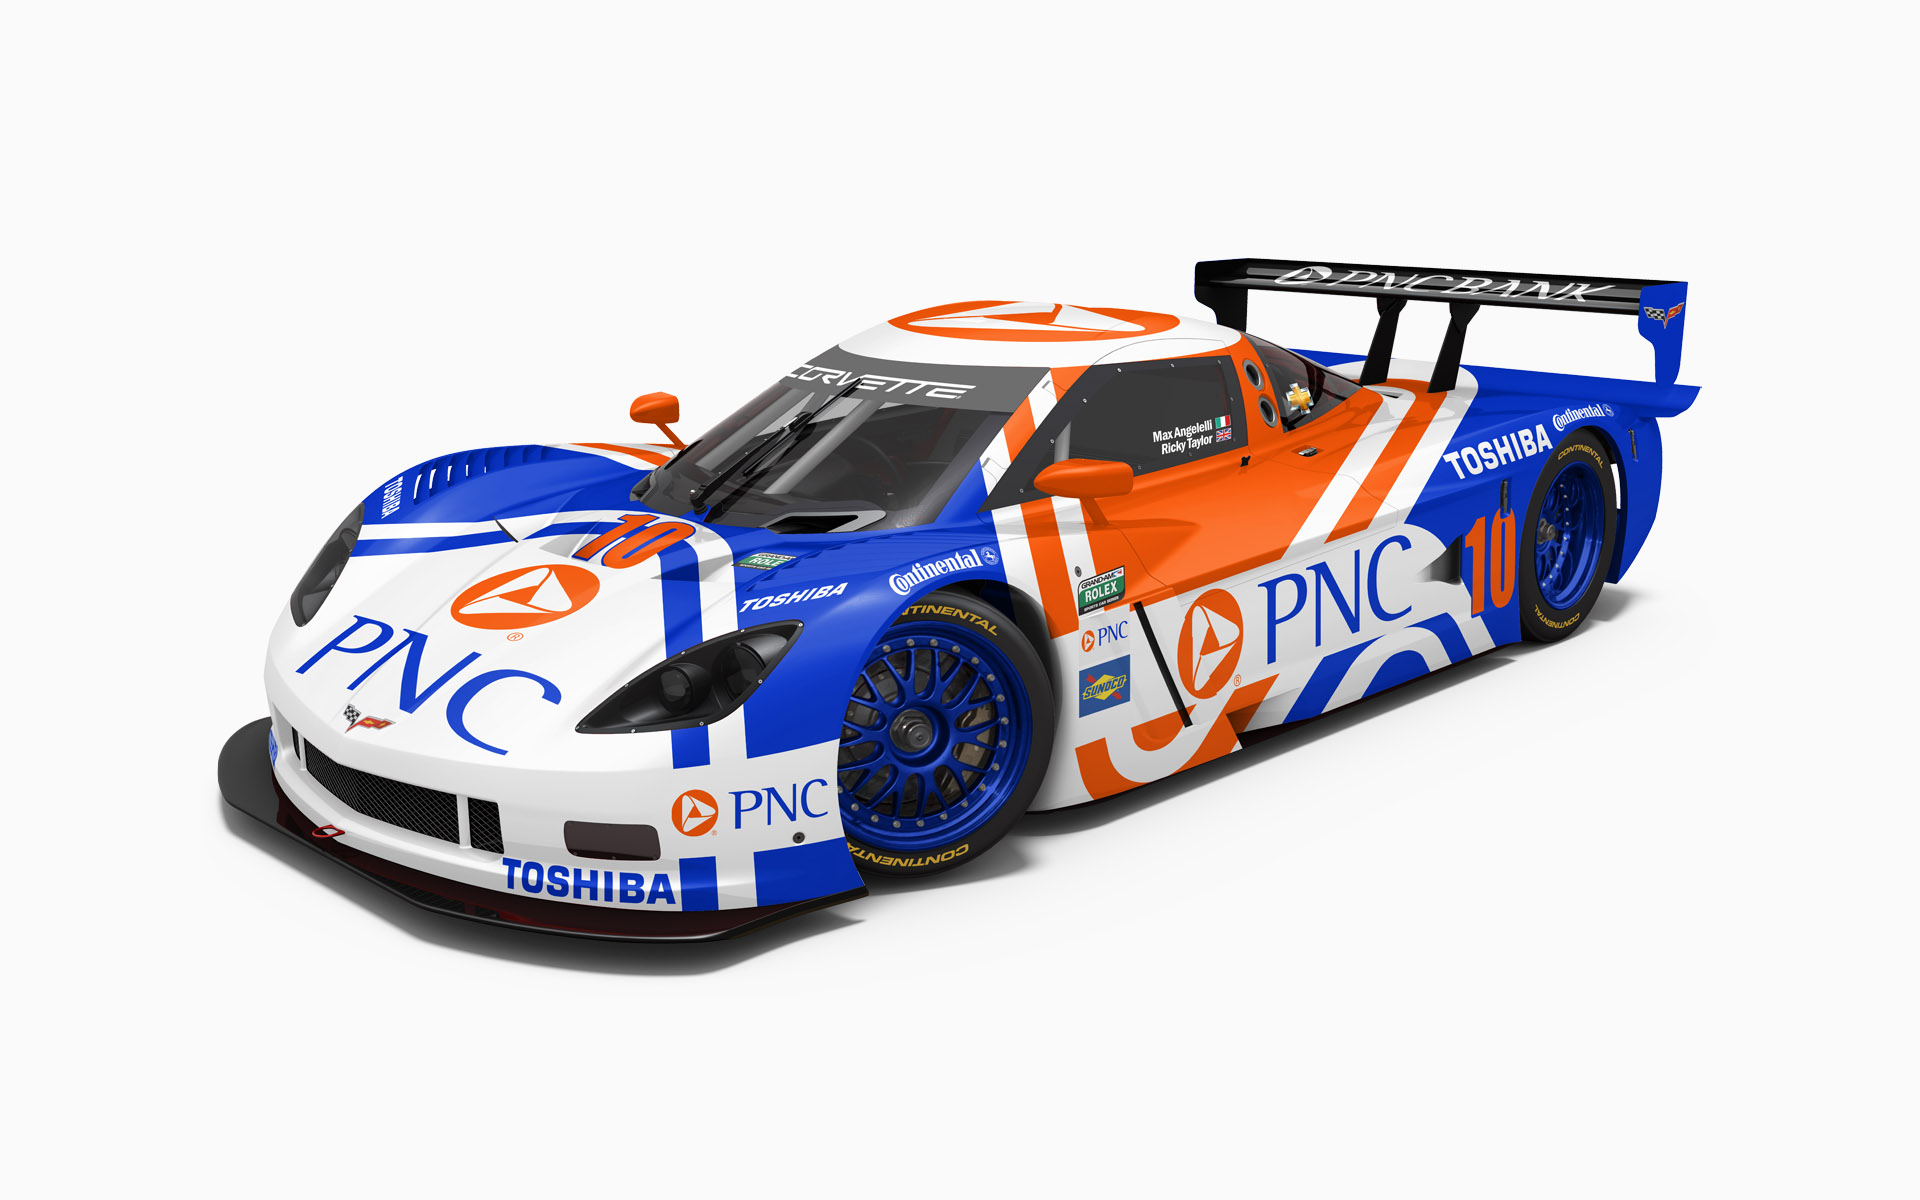 Wayne Taylor Racing PNC Corvette Daytona Prototype Livery Visualization